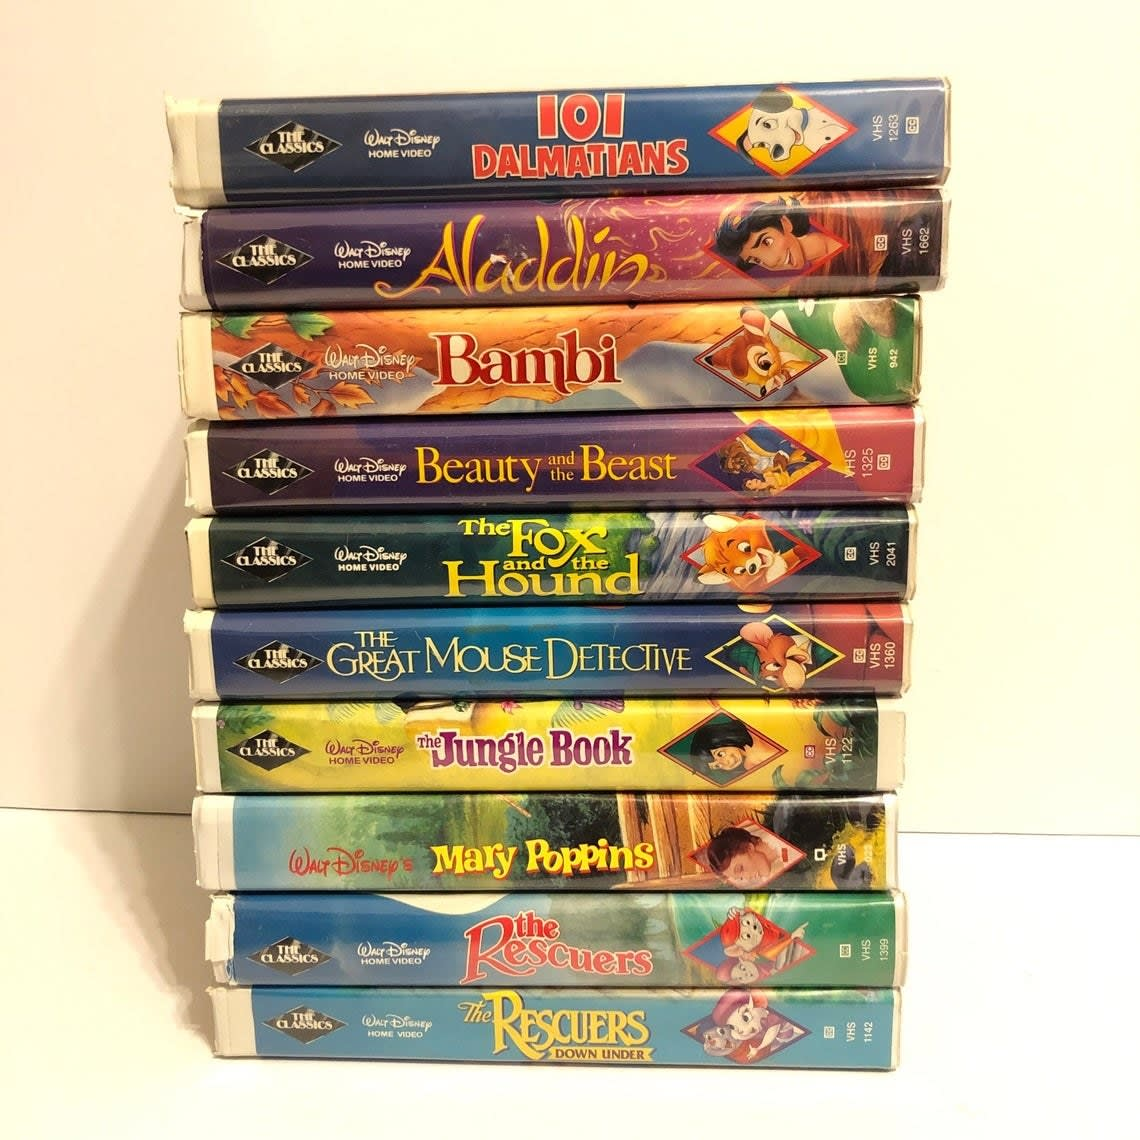 Stacked Disney VHS clam cases